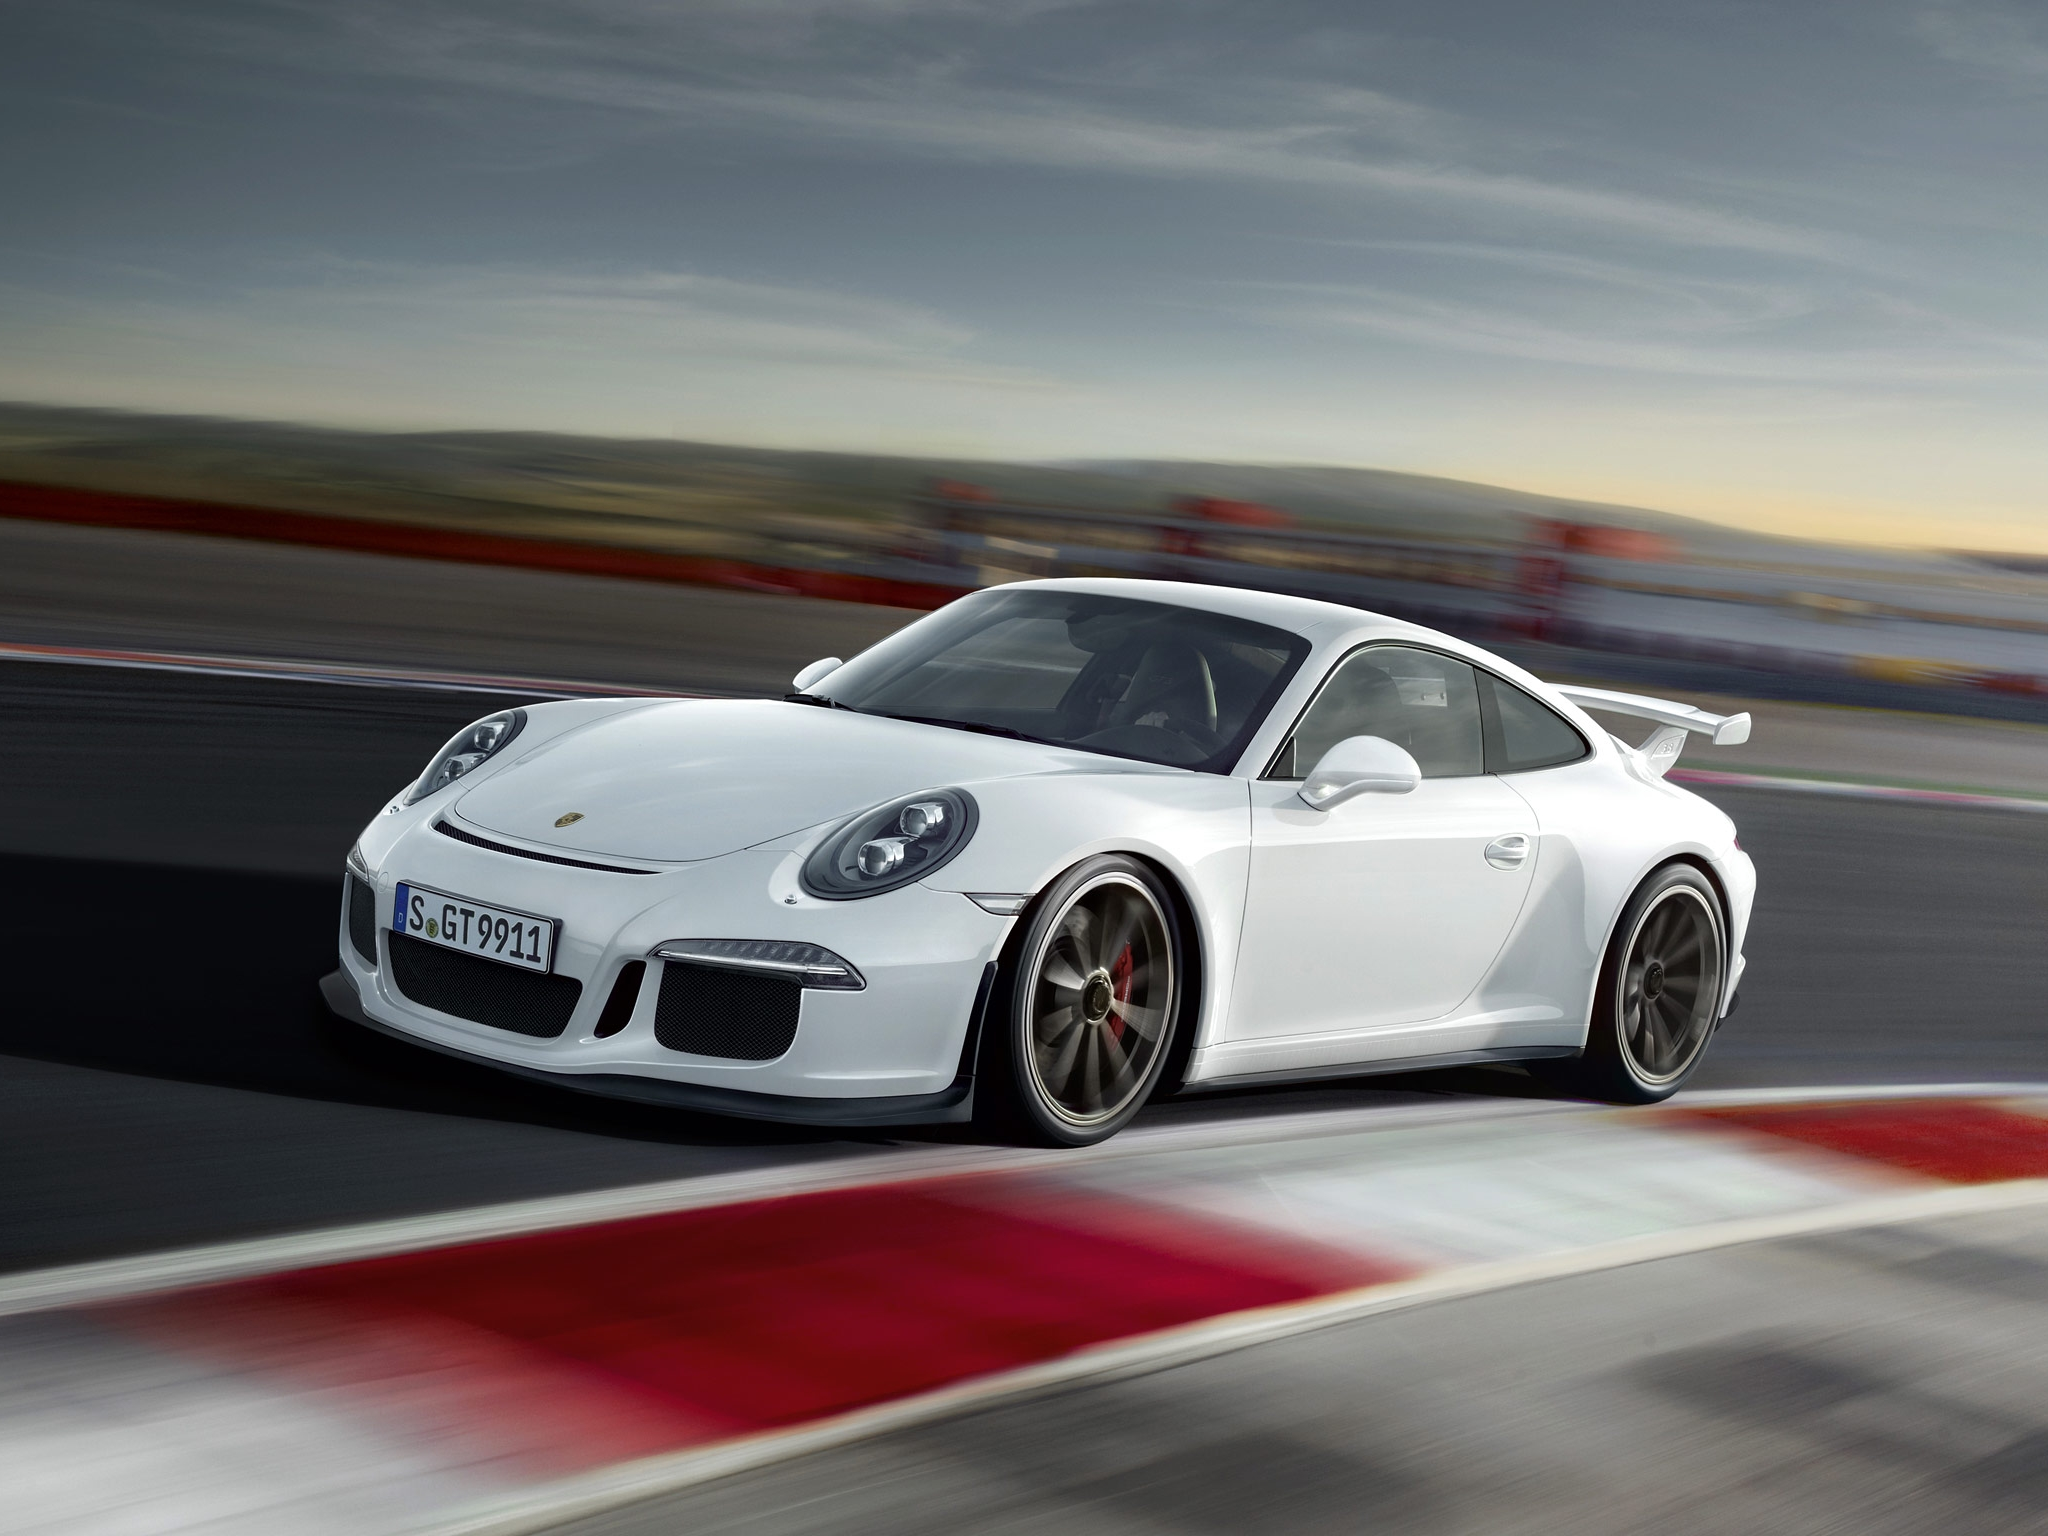 2014 Porsche 911 GT3 991 supercar r wallpaper 2048x1536 2048x1536